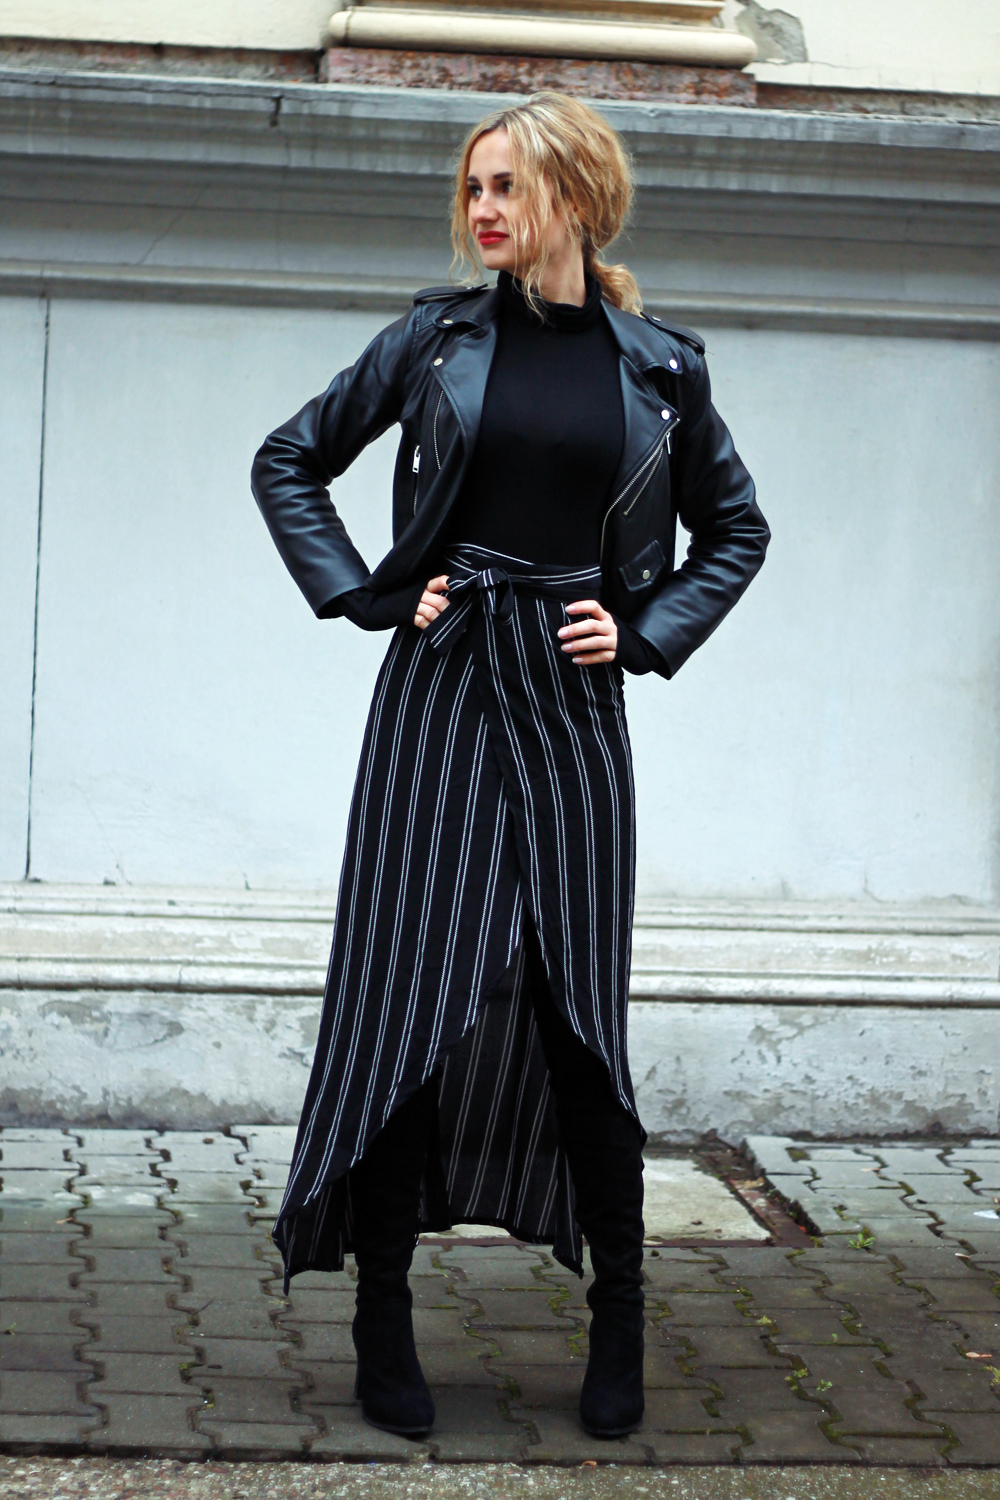 black-outfit-clothes-street-style-tumblr-girl-look-lookbook-fashion-ootd-what-to-wear-autumn-high-boots